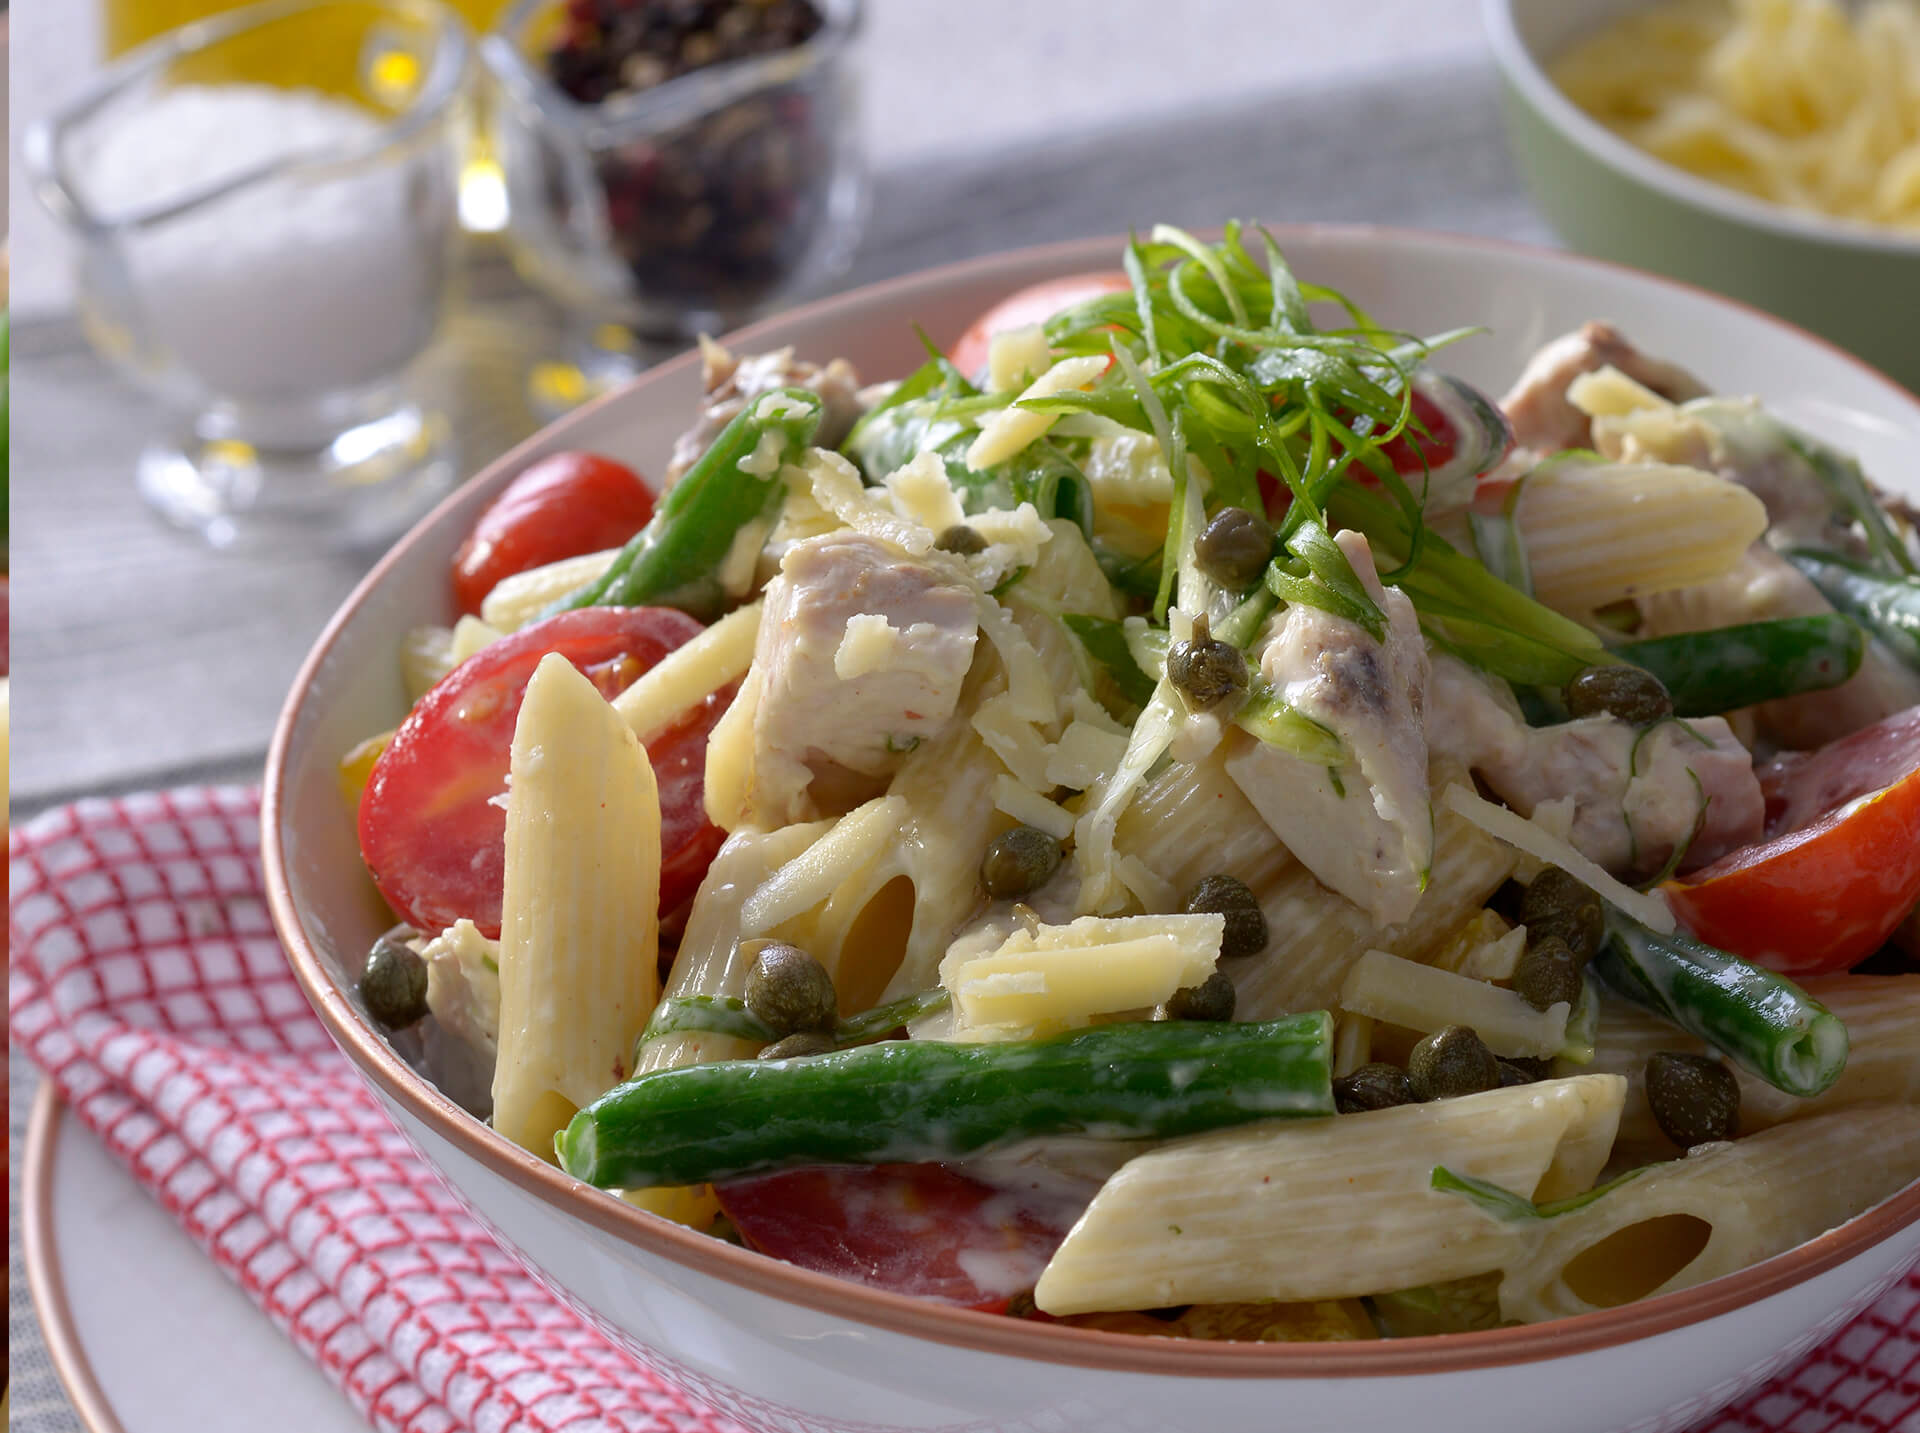 Penne with chicken and green bean salad 1920x1433